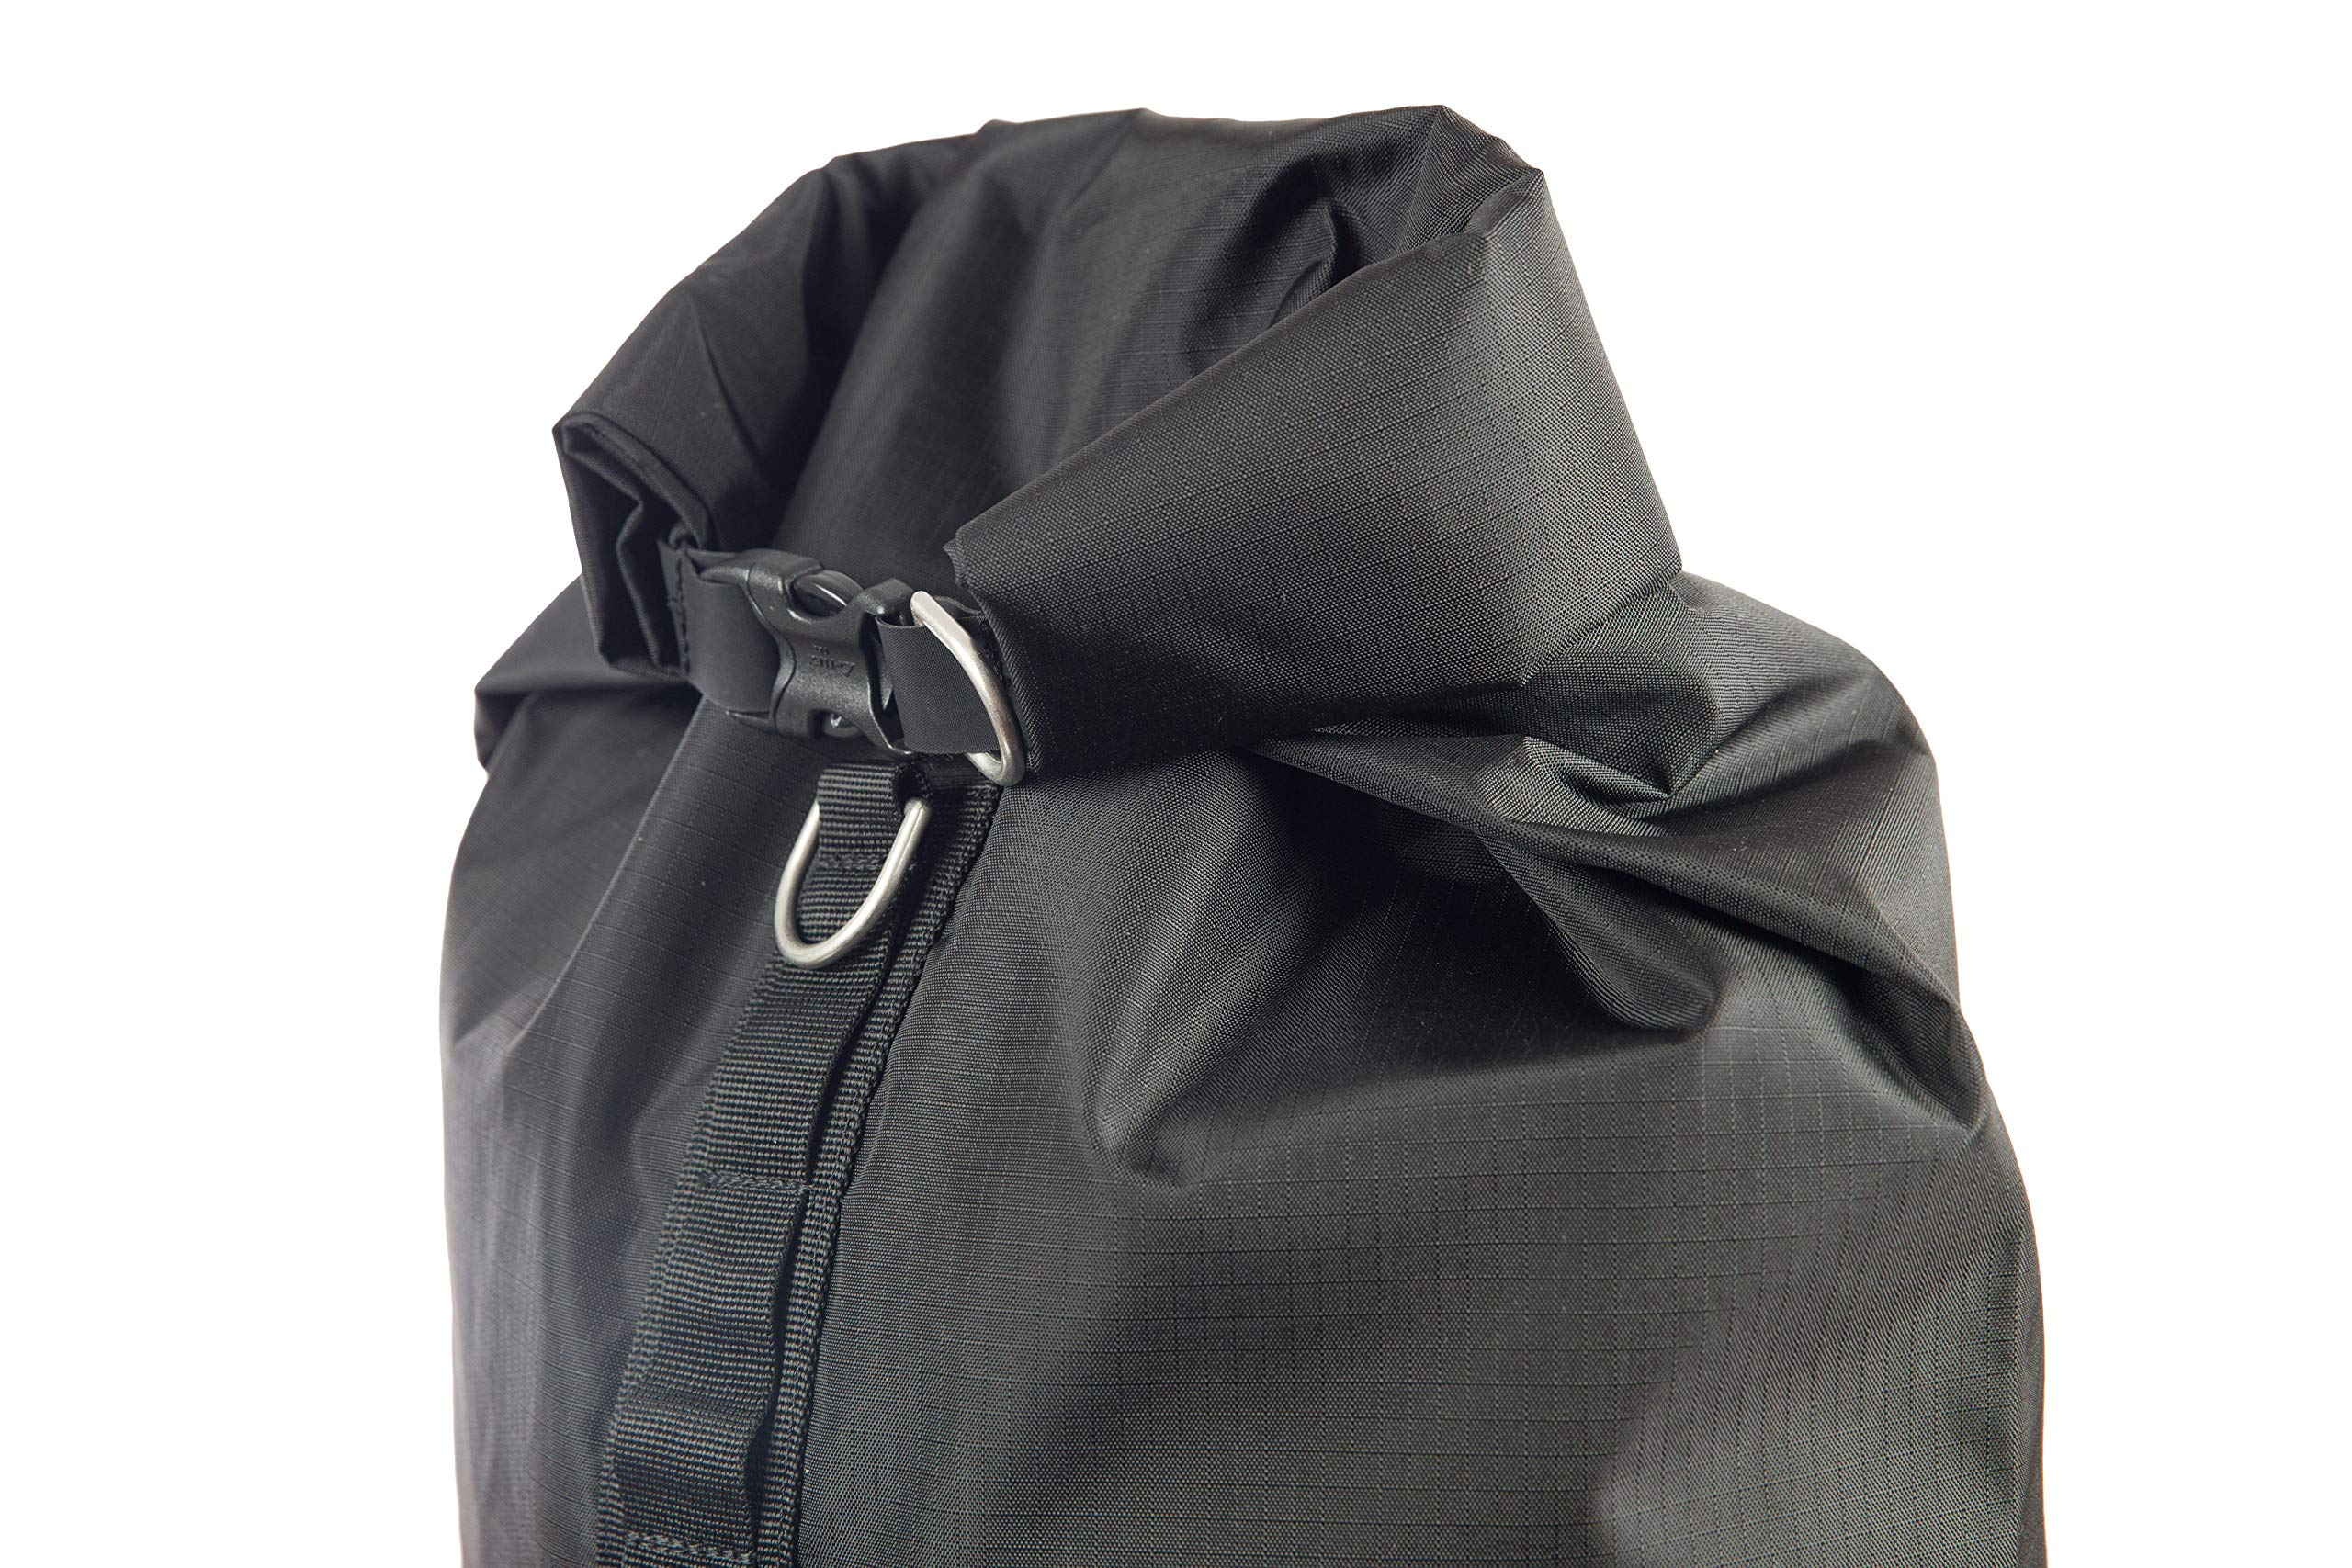 f-stop - Medium Tripod Bag, Fits up to 35'' by f-stop (Image #6)